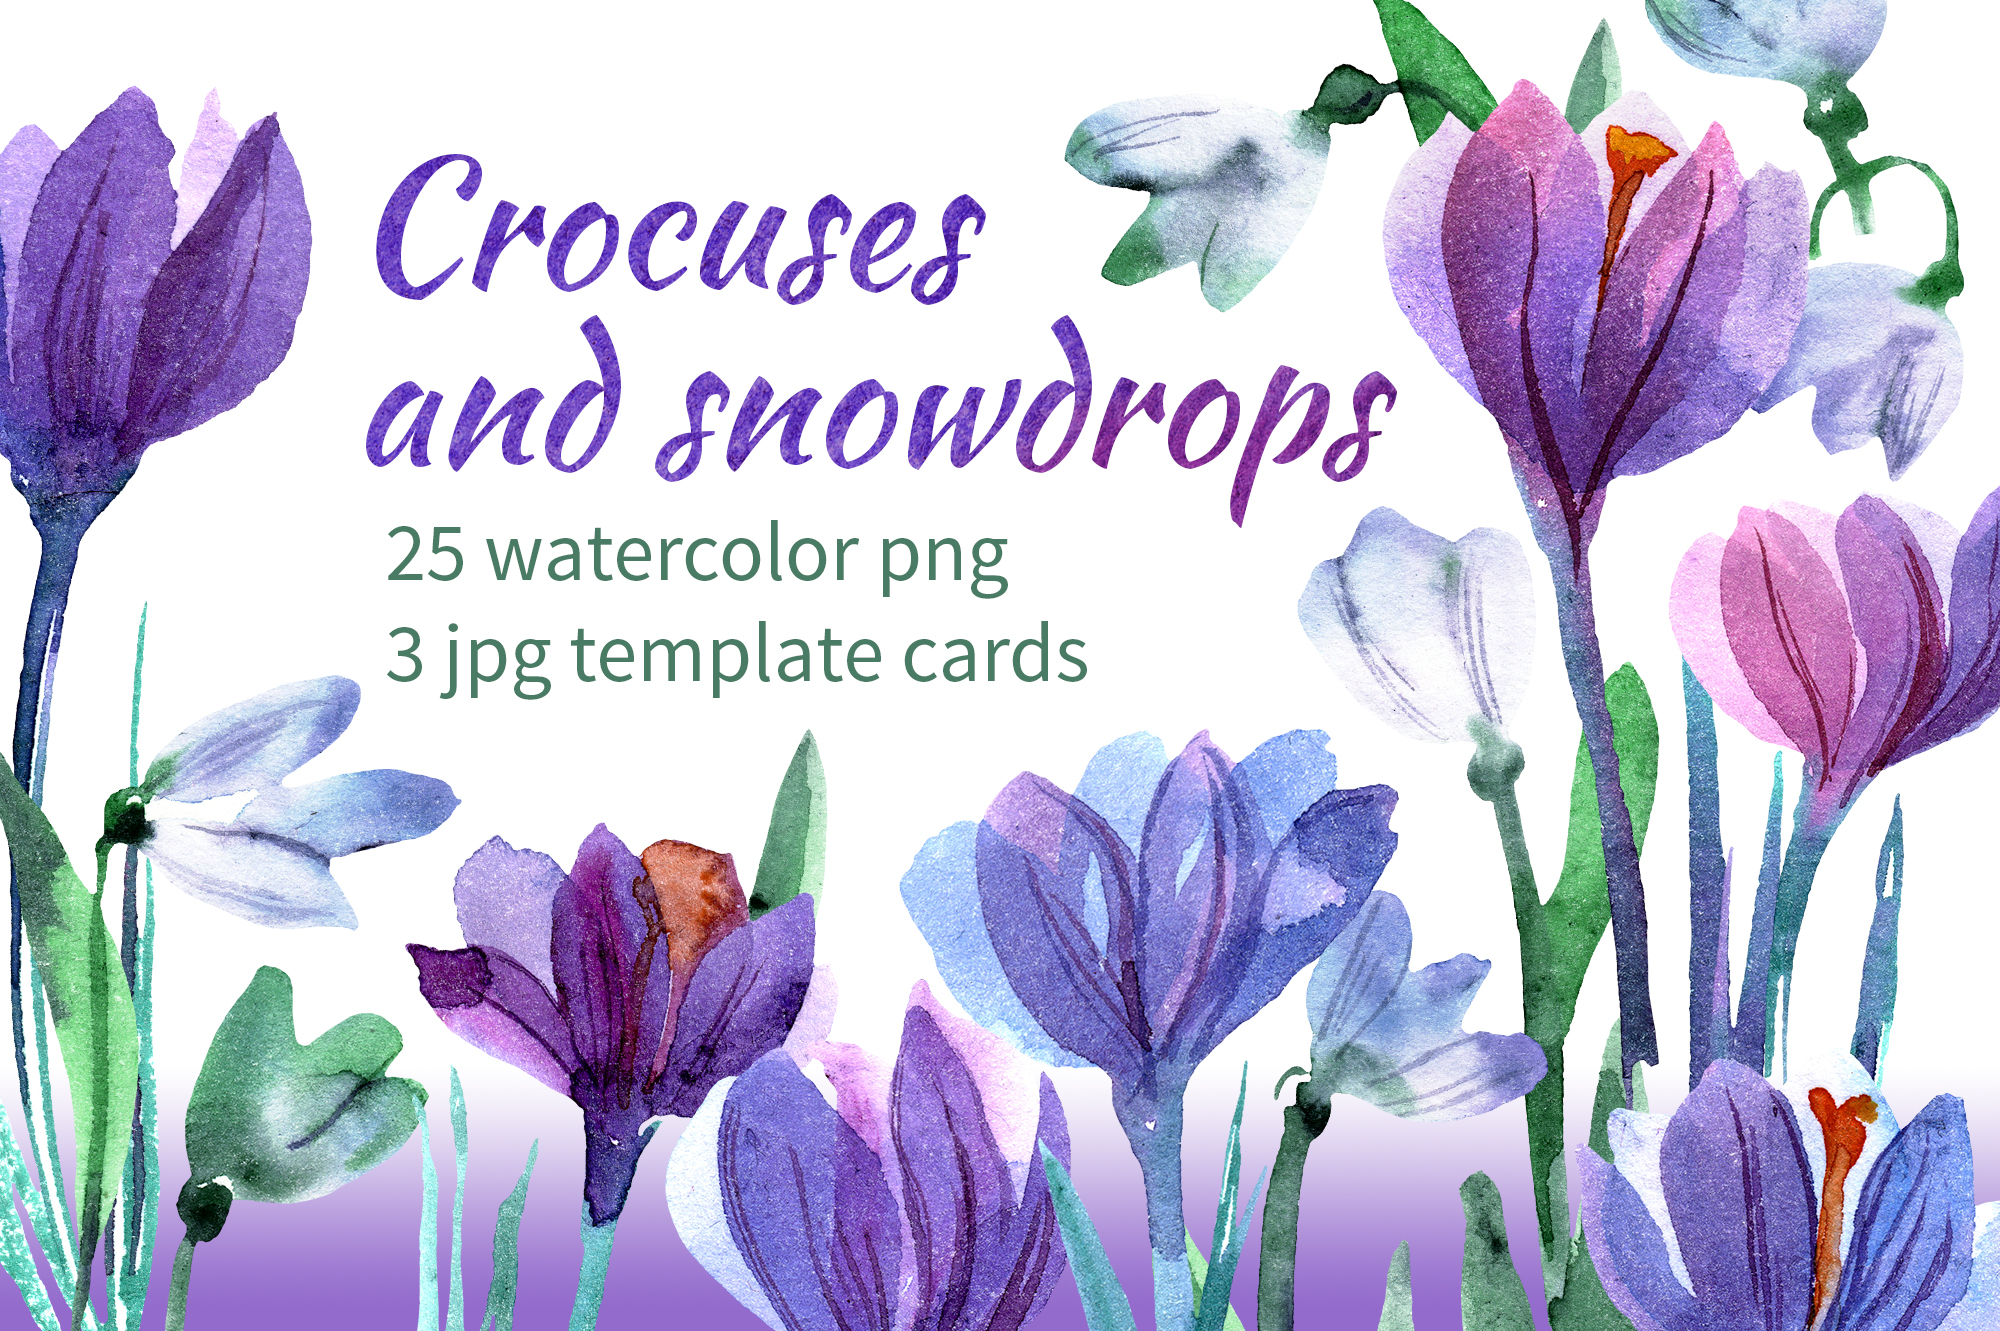 Watercolor crocuses and snowdrops example image 1